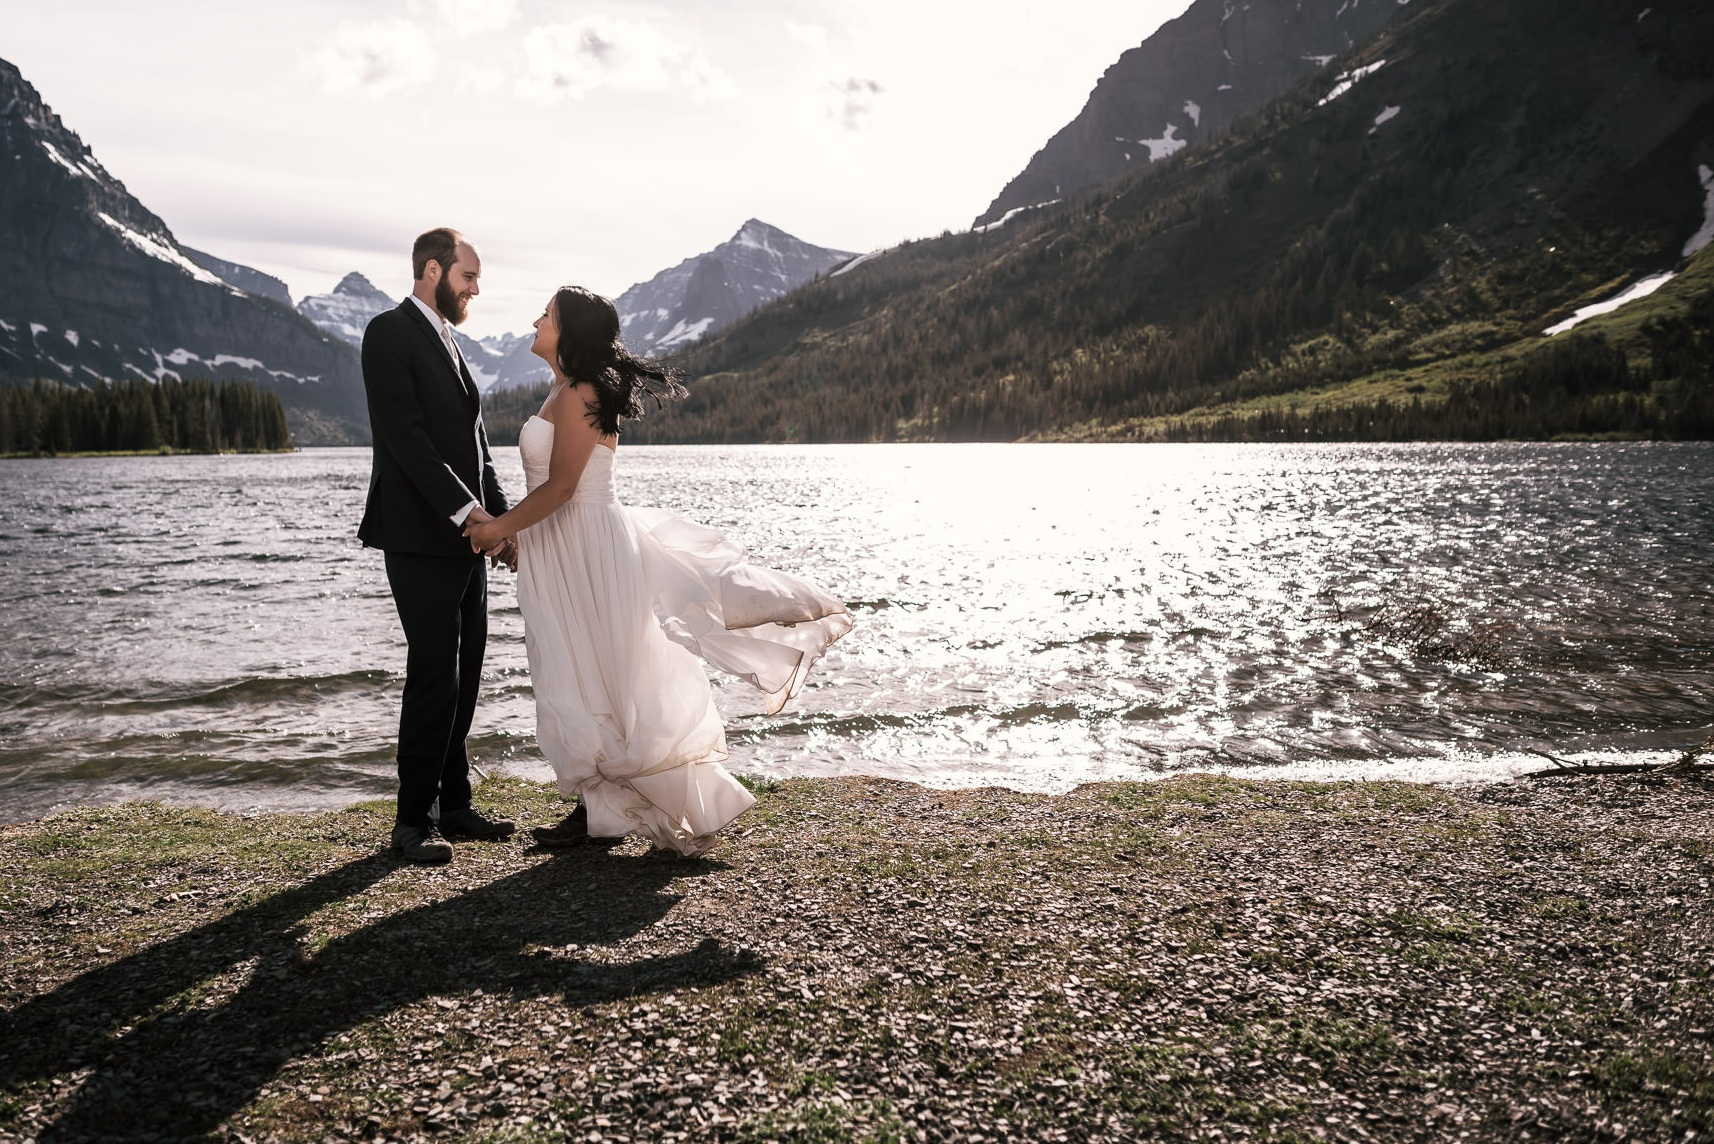 - Where to start? Norm flew all the way to Glacier NP to photograph our elopement. He did this without a hestiation at all. The day before our service he spent his whole time scouting out locations for our pictures to be taken even in the rain and wind. On the day of our special event he made us feel as comfortable as possible and hung with us from 8am to 9pm!! We hiked up 4 miles round-trip just to get photos at Avalanche Lake. Norm didn't complain a bit and was awesome to hang out and talk with. Norm, thank you for making us feel happy and for being the person we spent our special day with. ;)